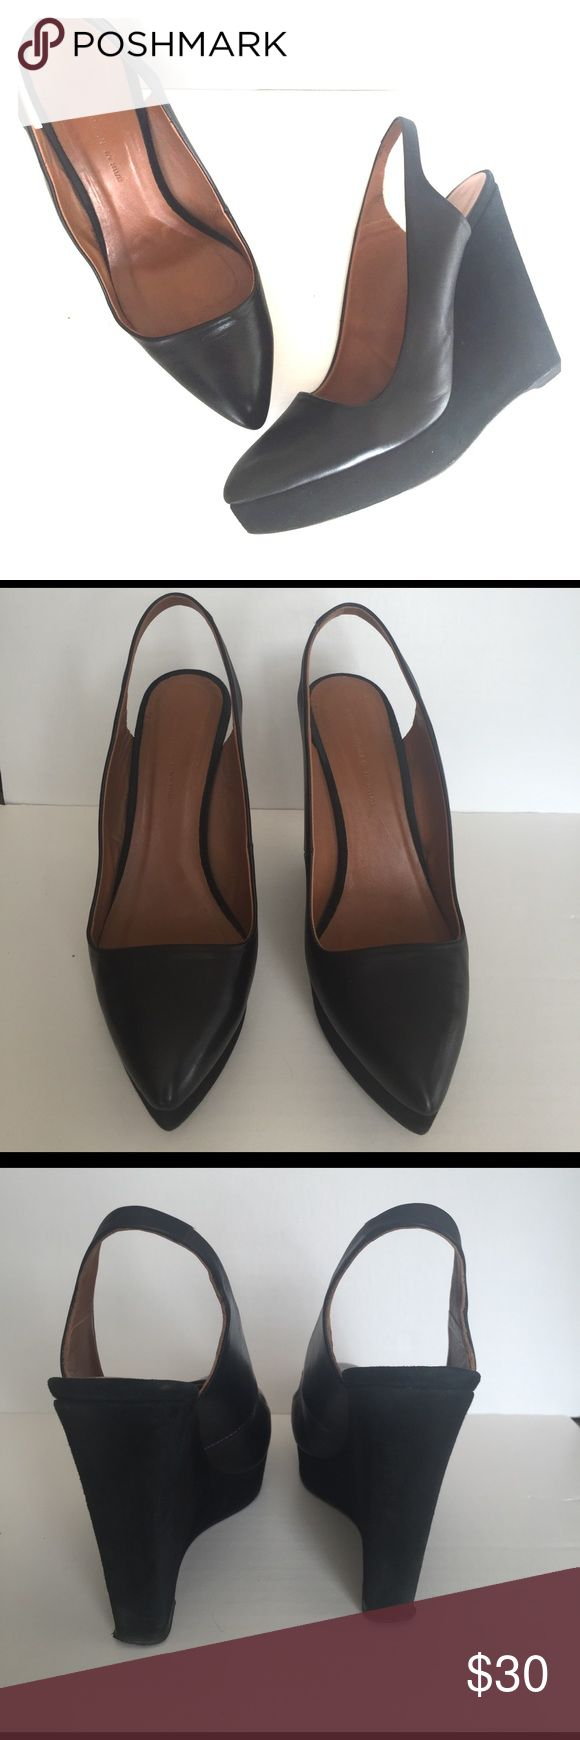 """Zara Leather and Suede Wedges Black leather and suede wedges from Zara Woman. Leather upper with suede wedge. Size 40 (10). 1"""" platform. 5"""" heel. Pointed toe. Zara Shoes Wedges"""